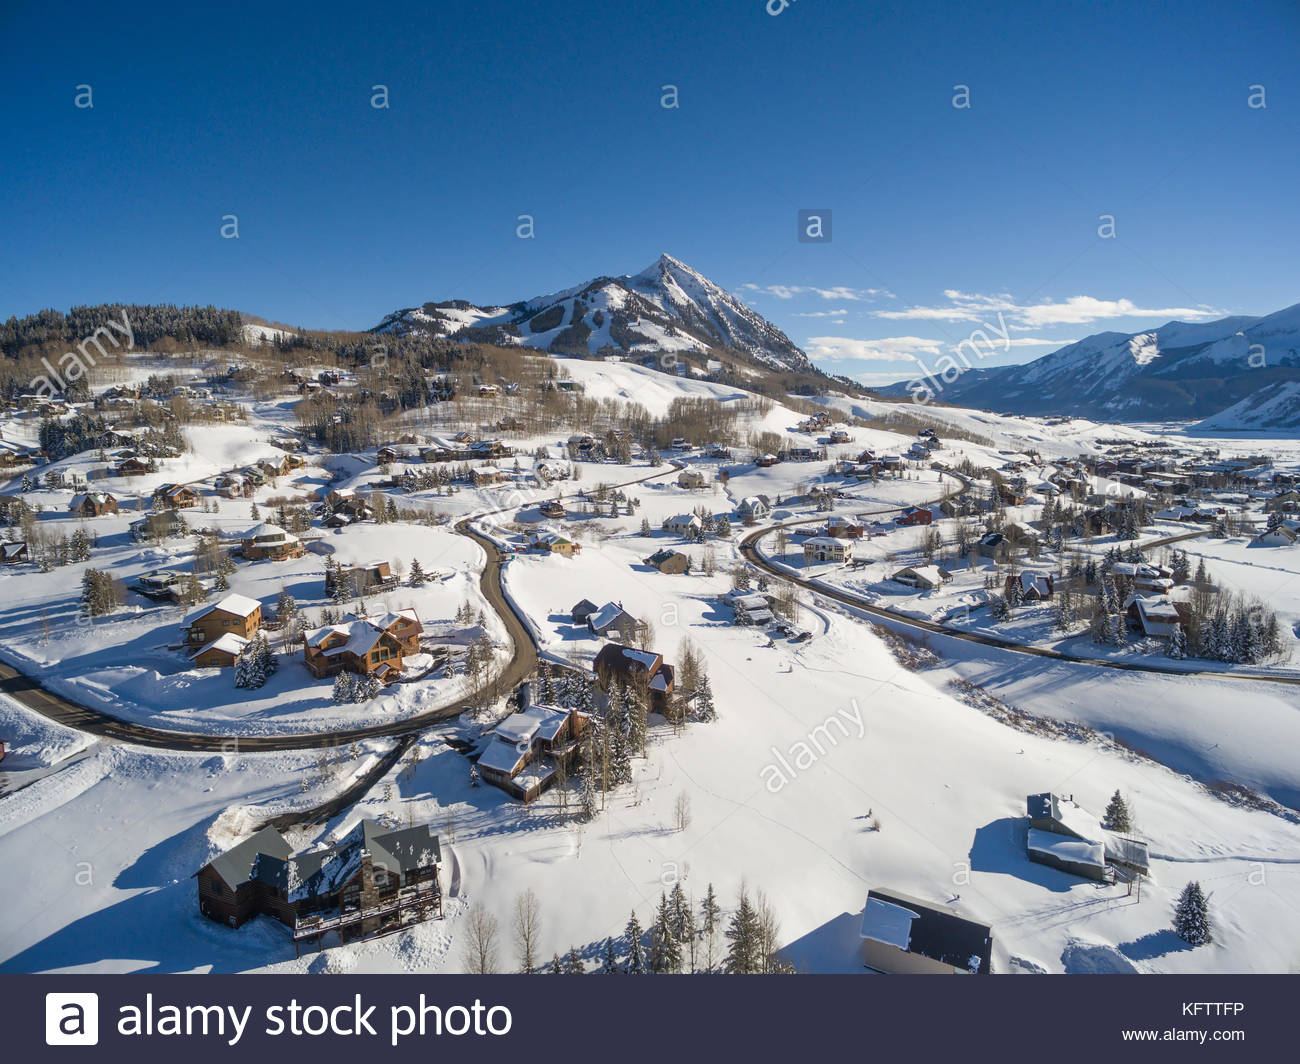 Fresh snow covers the homes and yards of Mount Crested Butte, Colorado with the ski area of Crested Butte Mountain - Stock Image